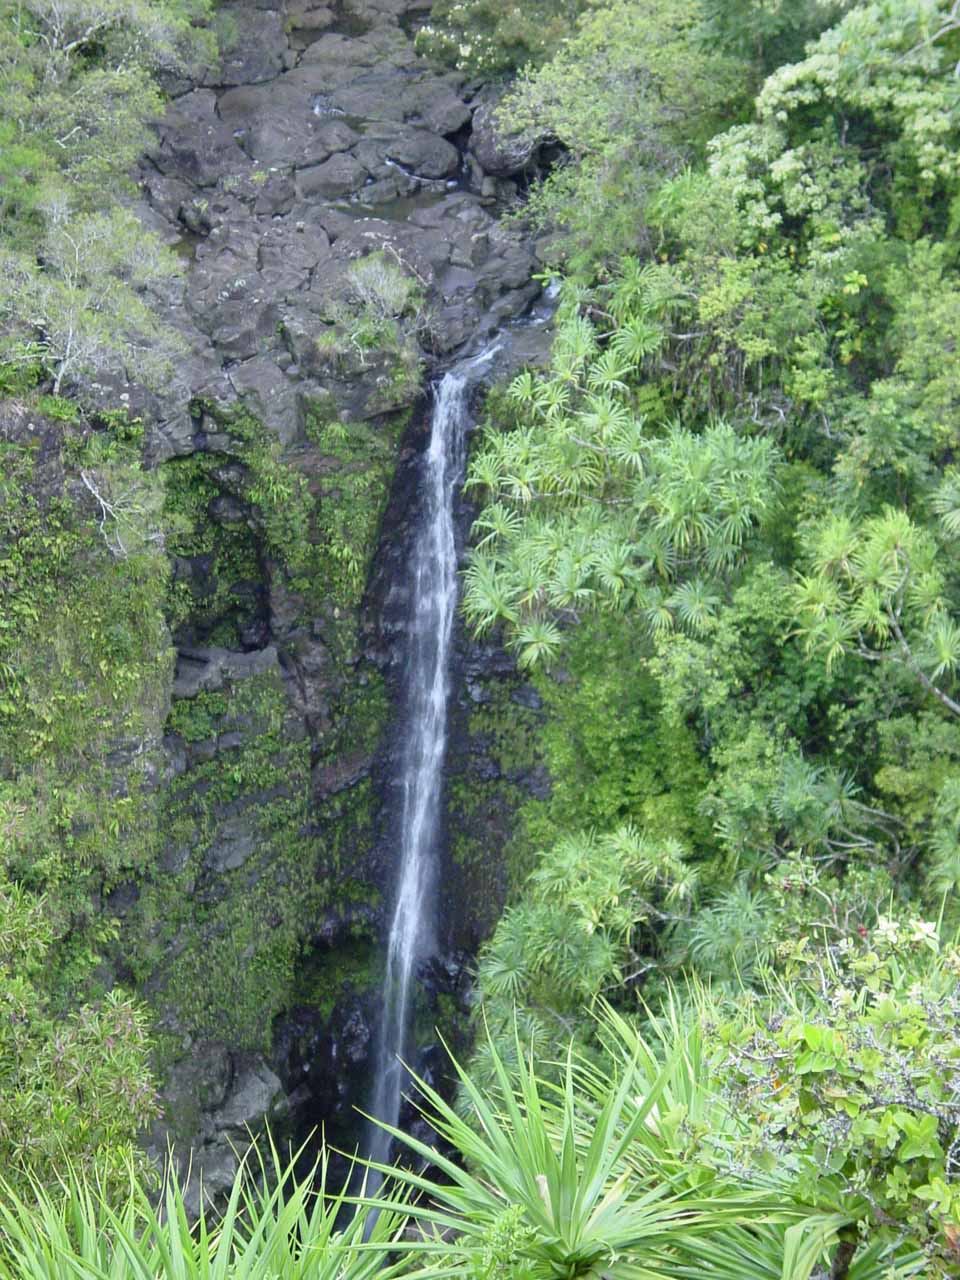 Lower Puohokamoa Falls just two days later from a better viewing spot